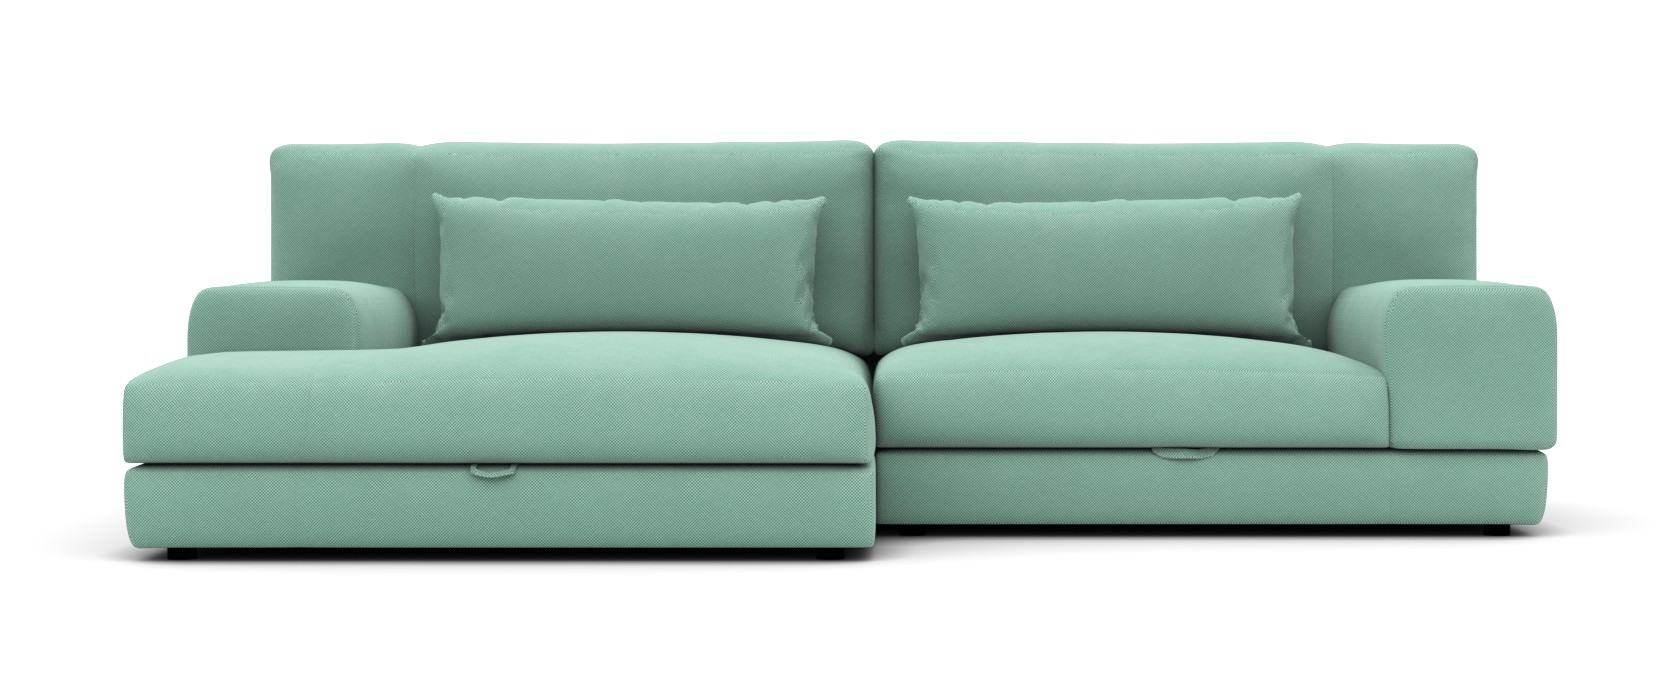 Schlafsofa mit Chaiselongue Latina